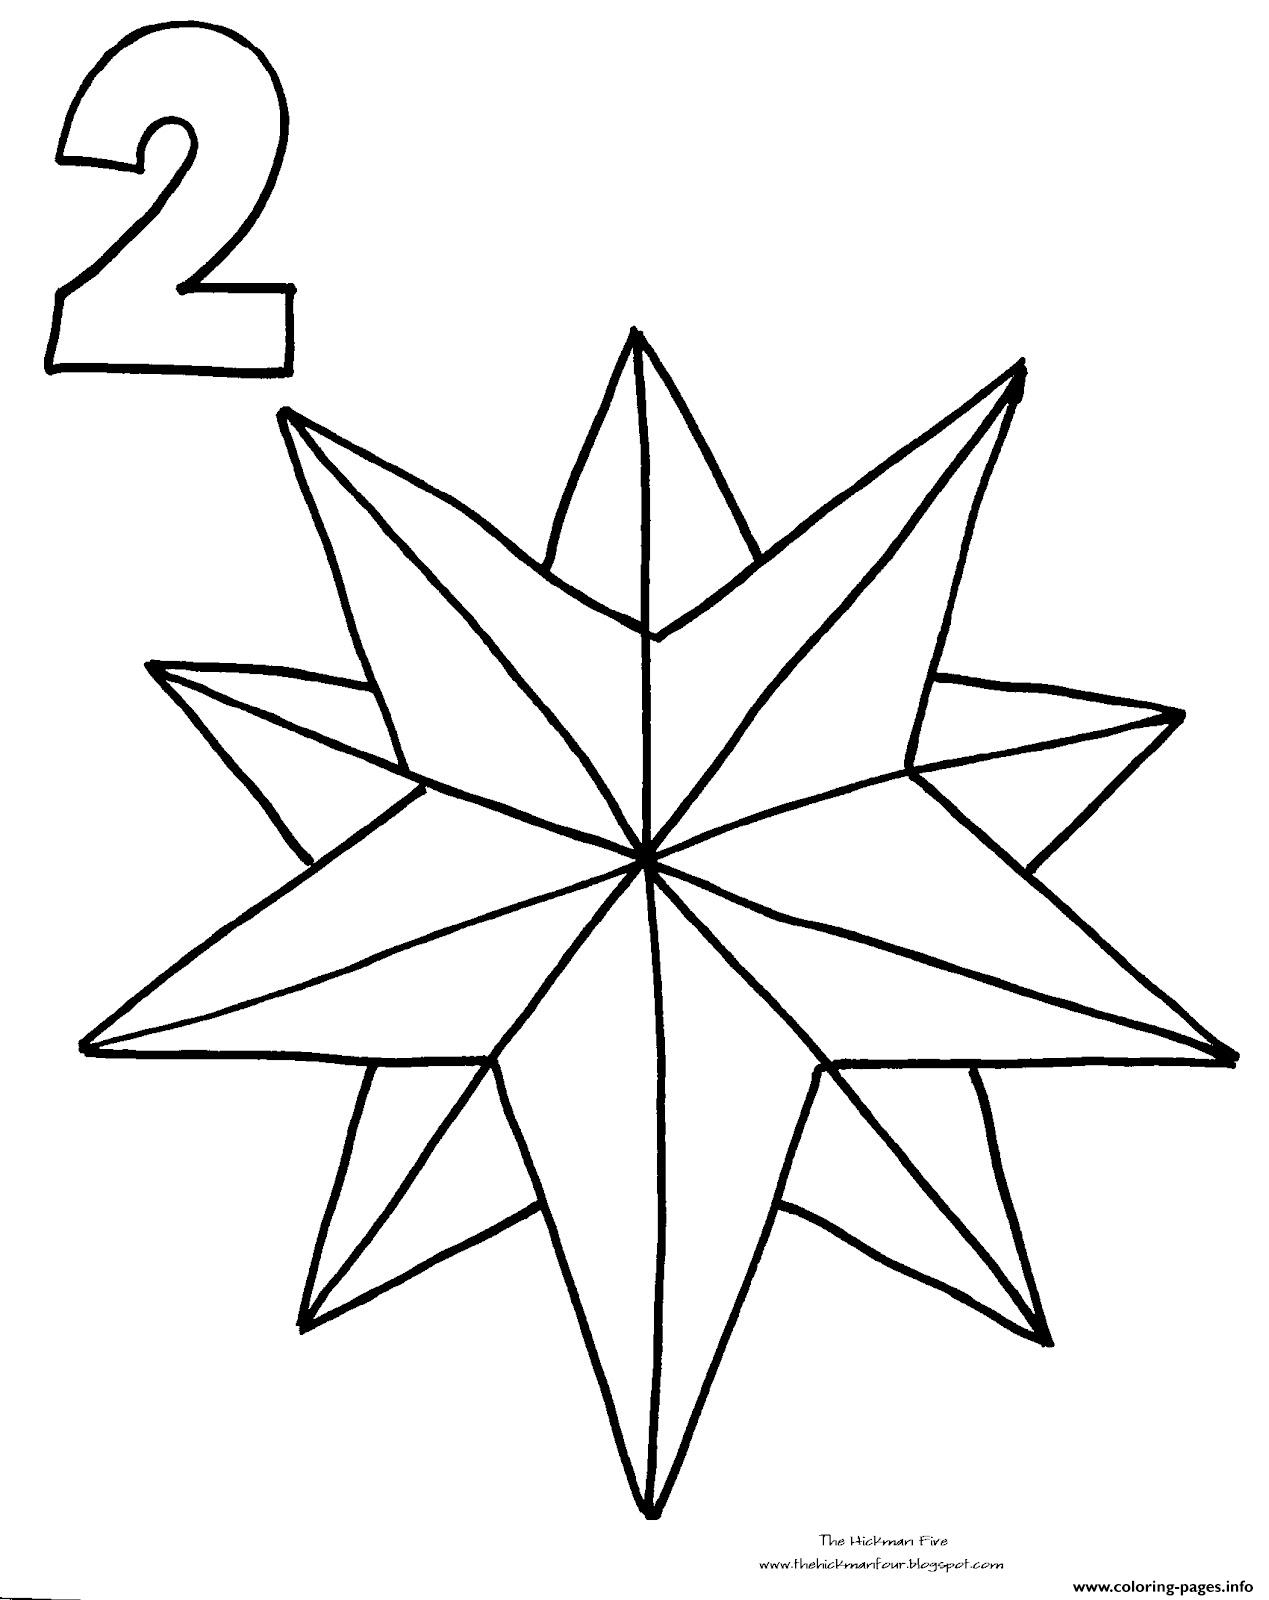 Star Drawing at GetDrawings.com | Free for personal use Star Drawing ...